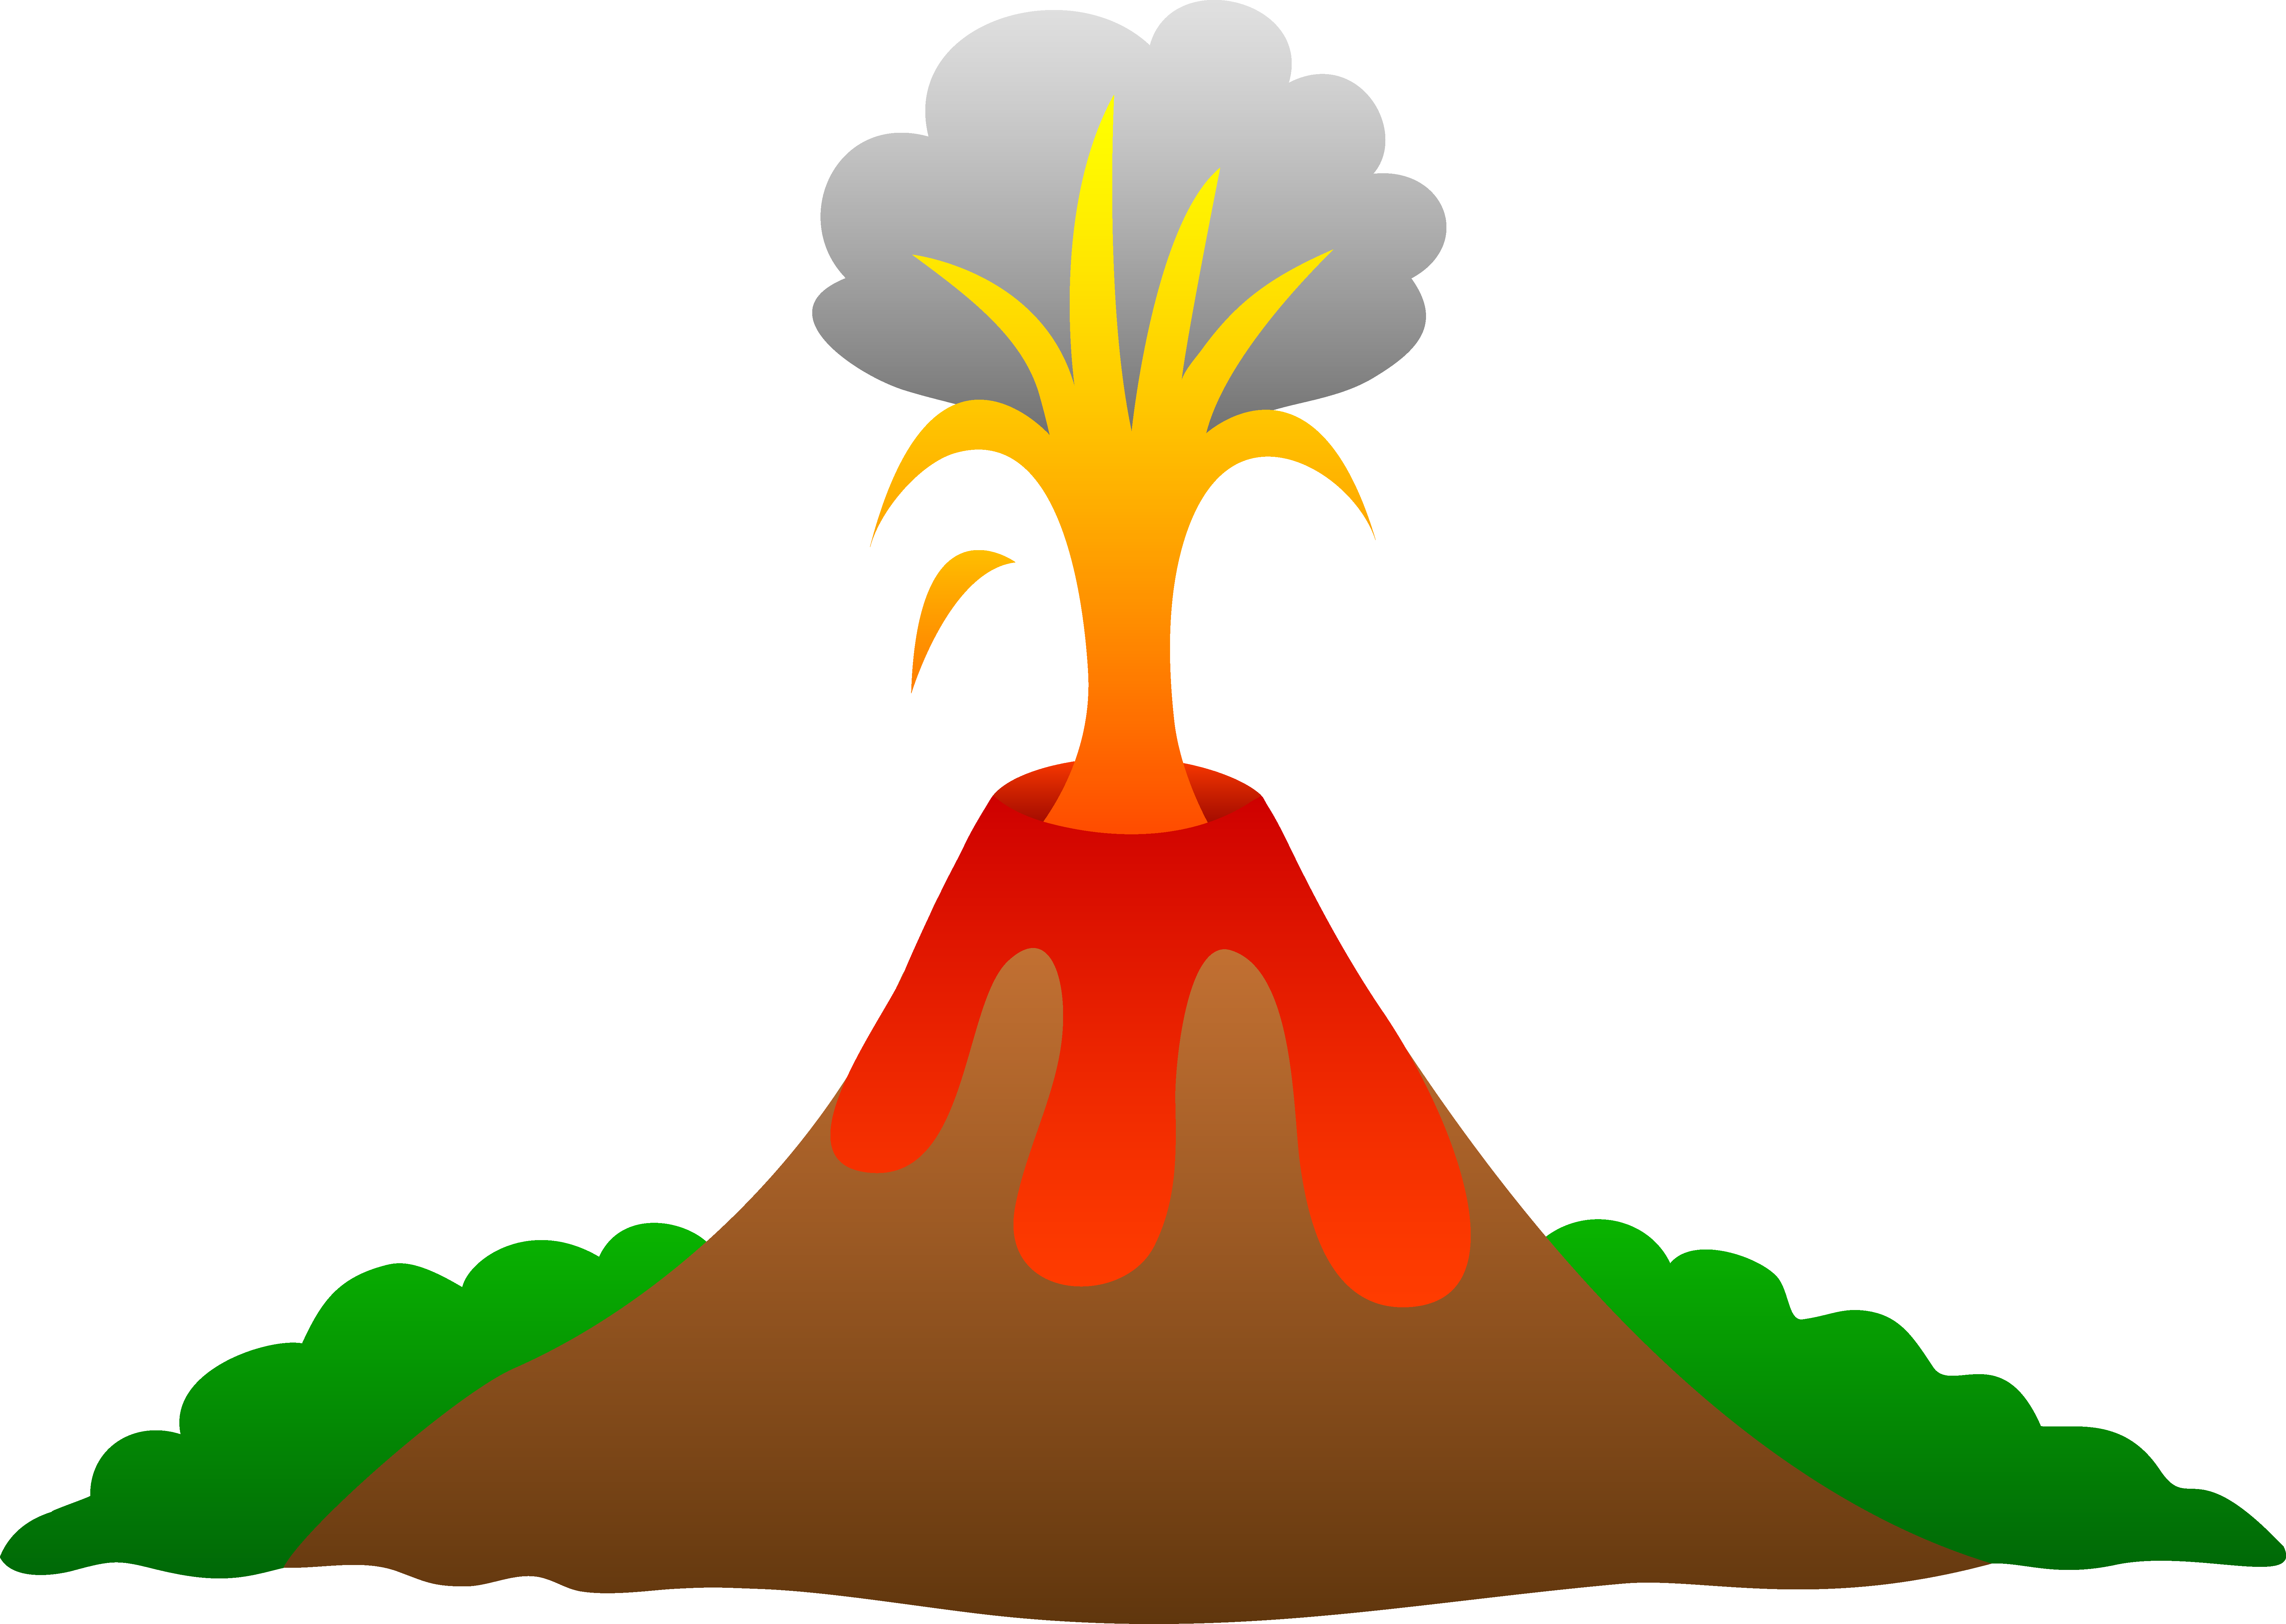 Volcano clipart movement [Infographic] Project Townsend Volcano Alexias